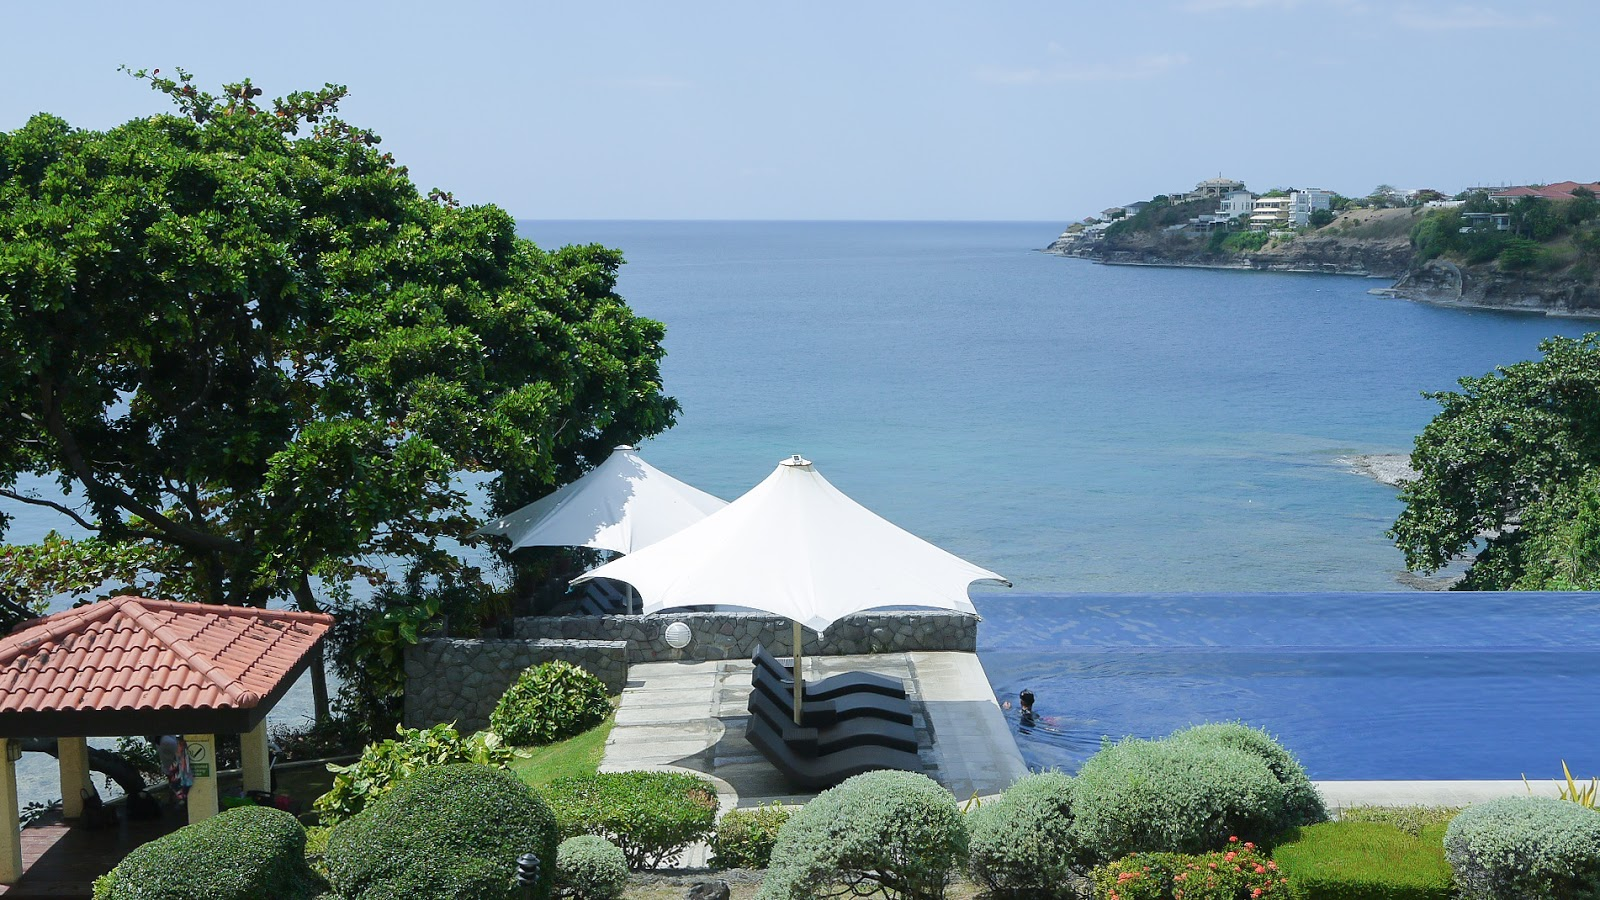 Let S Talk About Fun Things To Do At Club Punta Fuego A